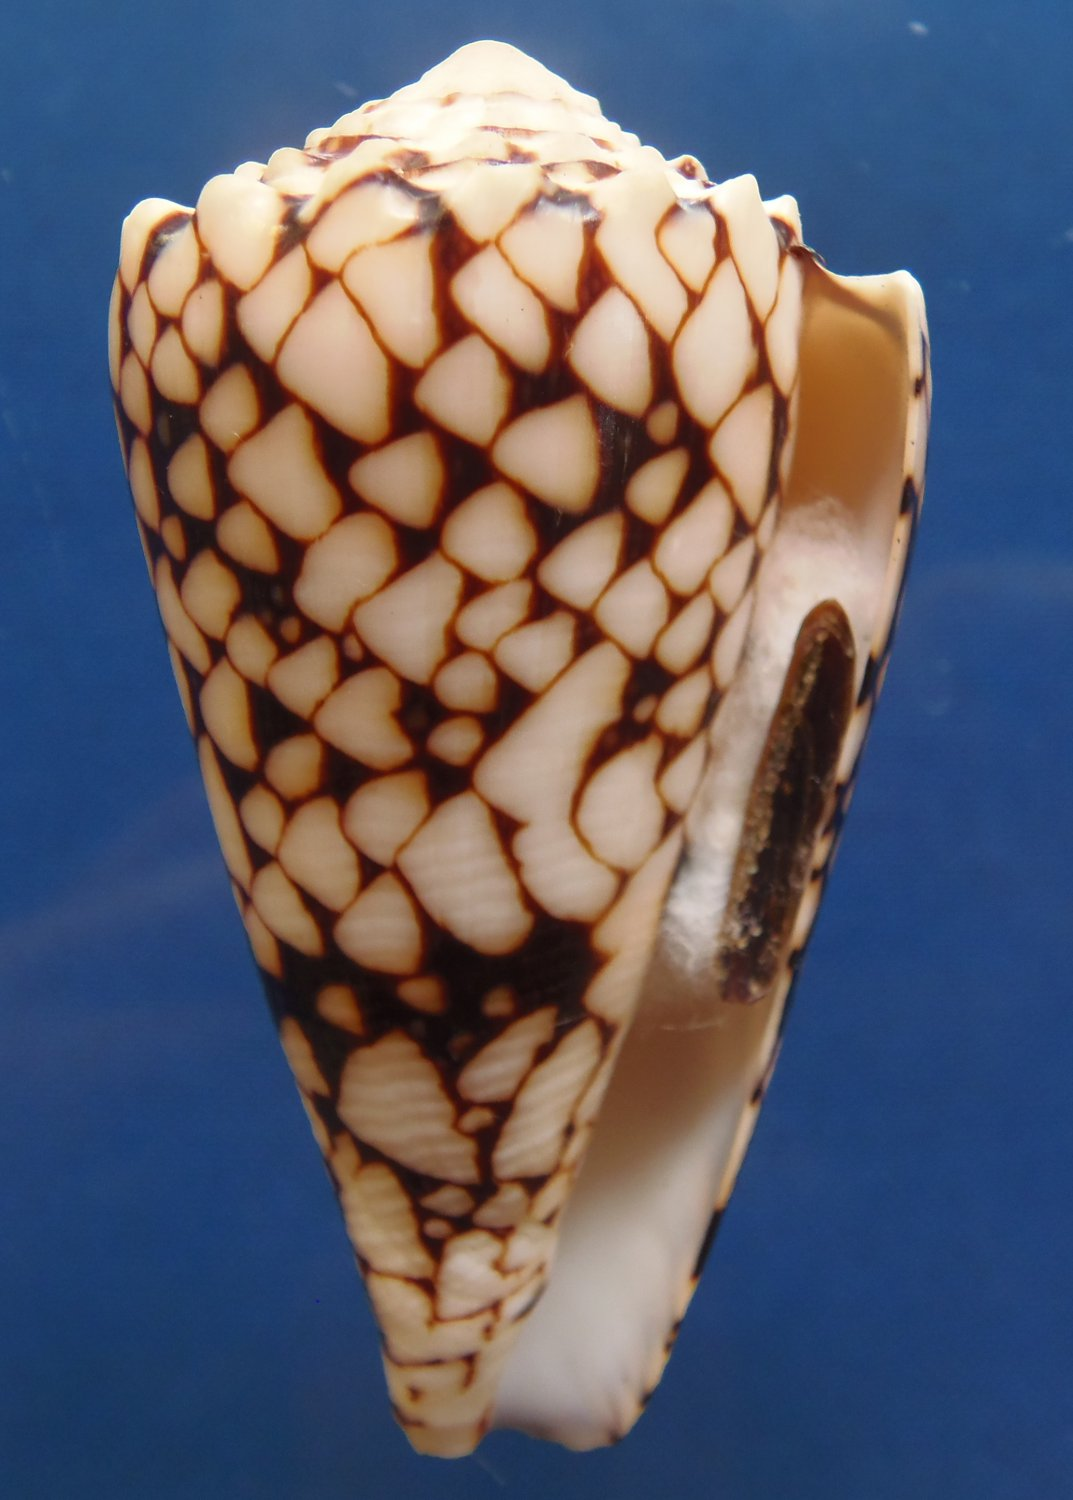 87854 Gems Under the Sea Seashell Banded Marble Cone Conus bandanus, 73 mm